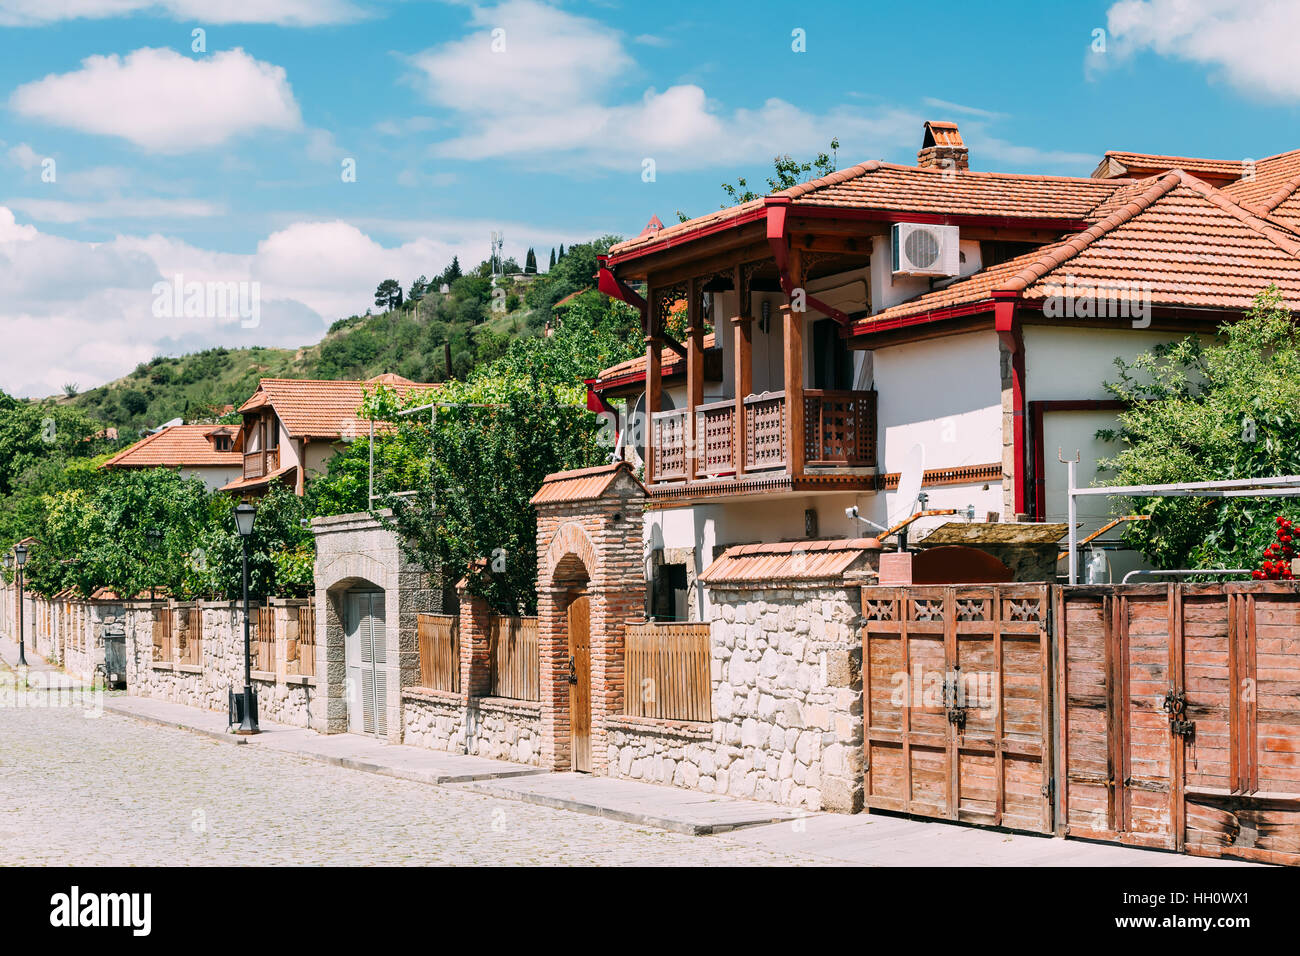 The White Beautiful Private Country House With Red Tile Roof And Wooden  Balcony At The Cosy Paved Street In Sunny Summer Under Blue